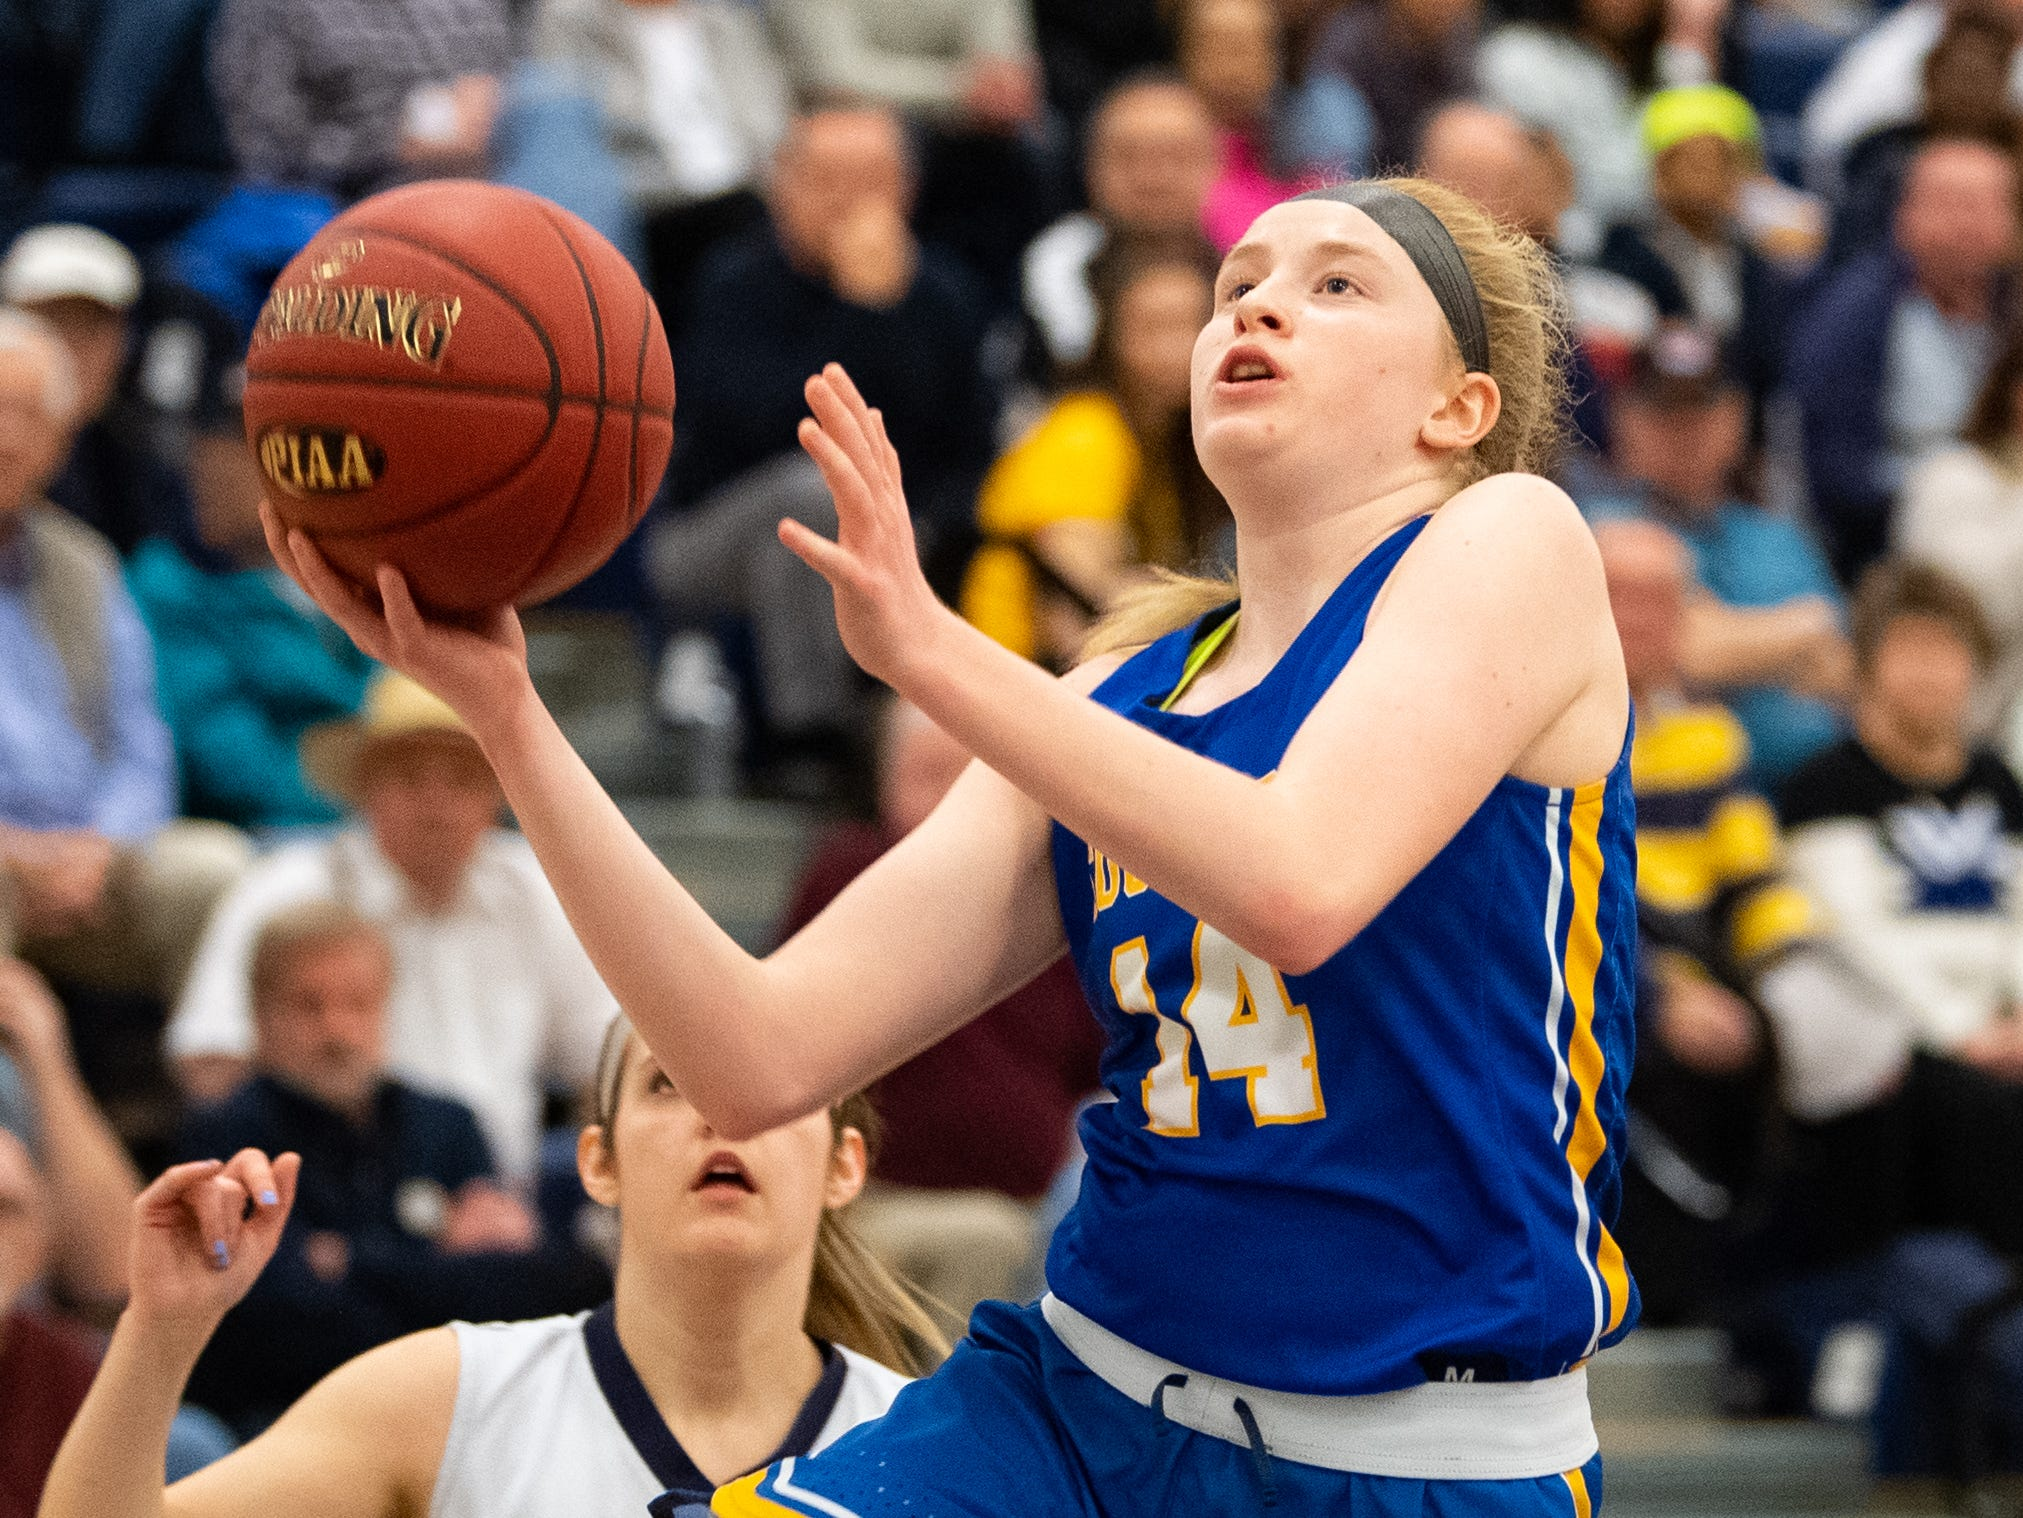 Caroline Brennan (14) lays the ball up during the PIAA first round girls' basketball game between Dallastown and Downingtown East Friday, March 8, 2019 at West York Area High School. The Wildcats are neck and neck with the Cougars.